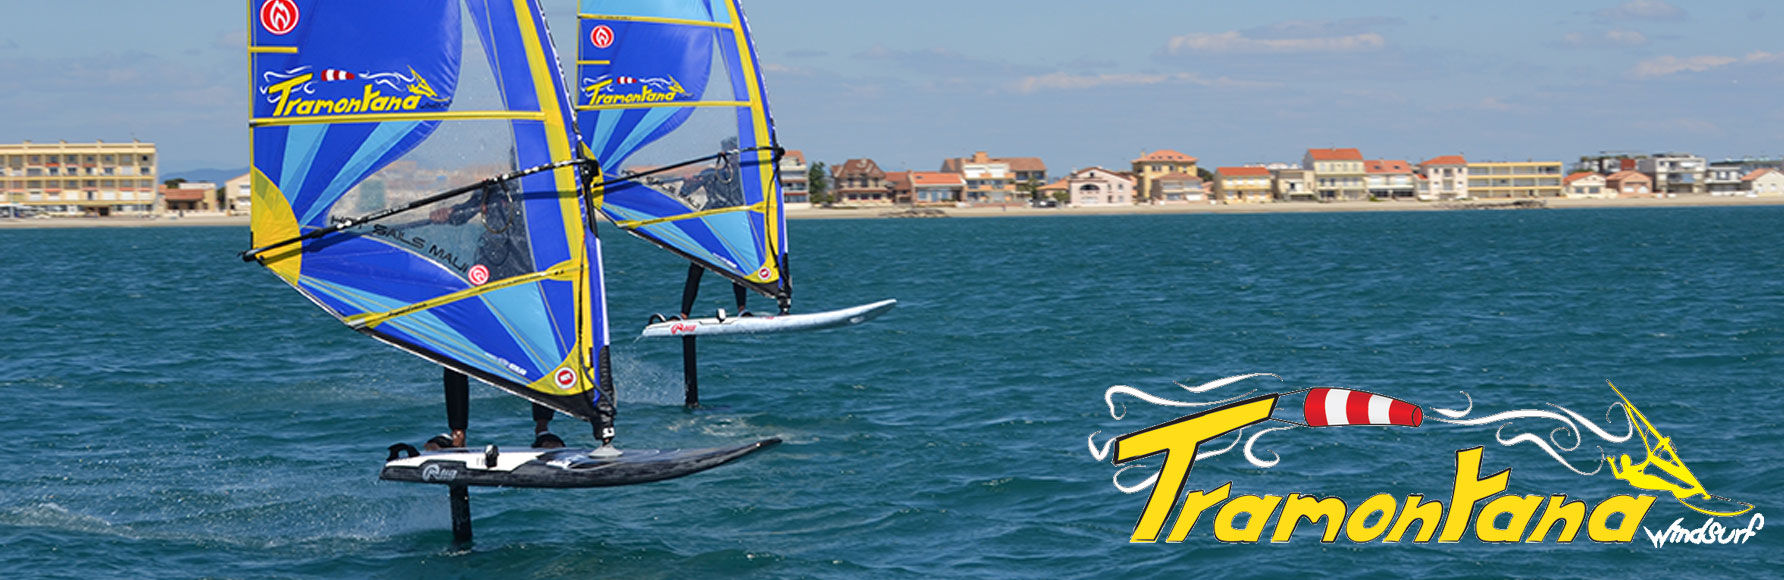 Tramontana Windsurf, your custom windsurf school !